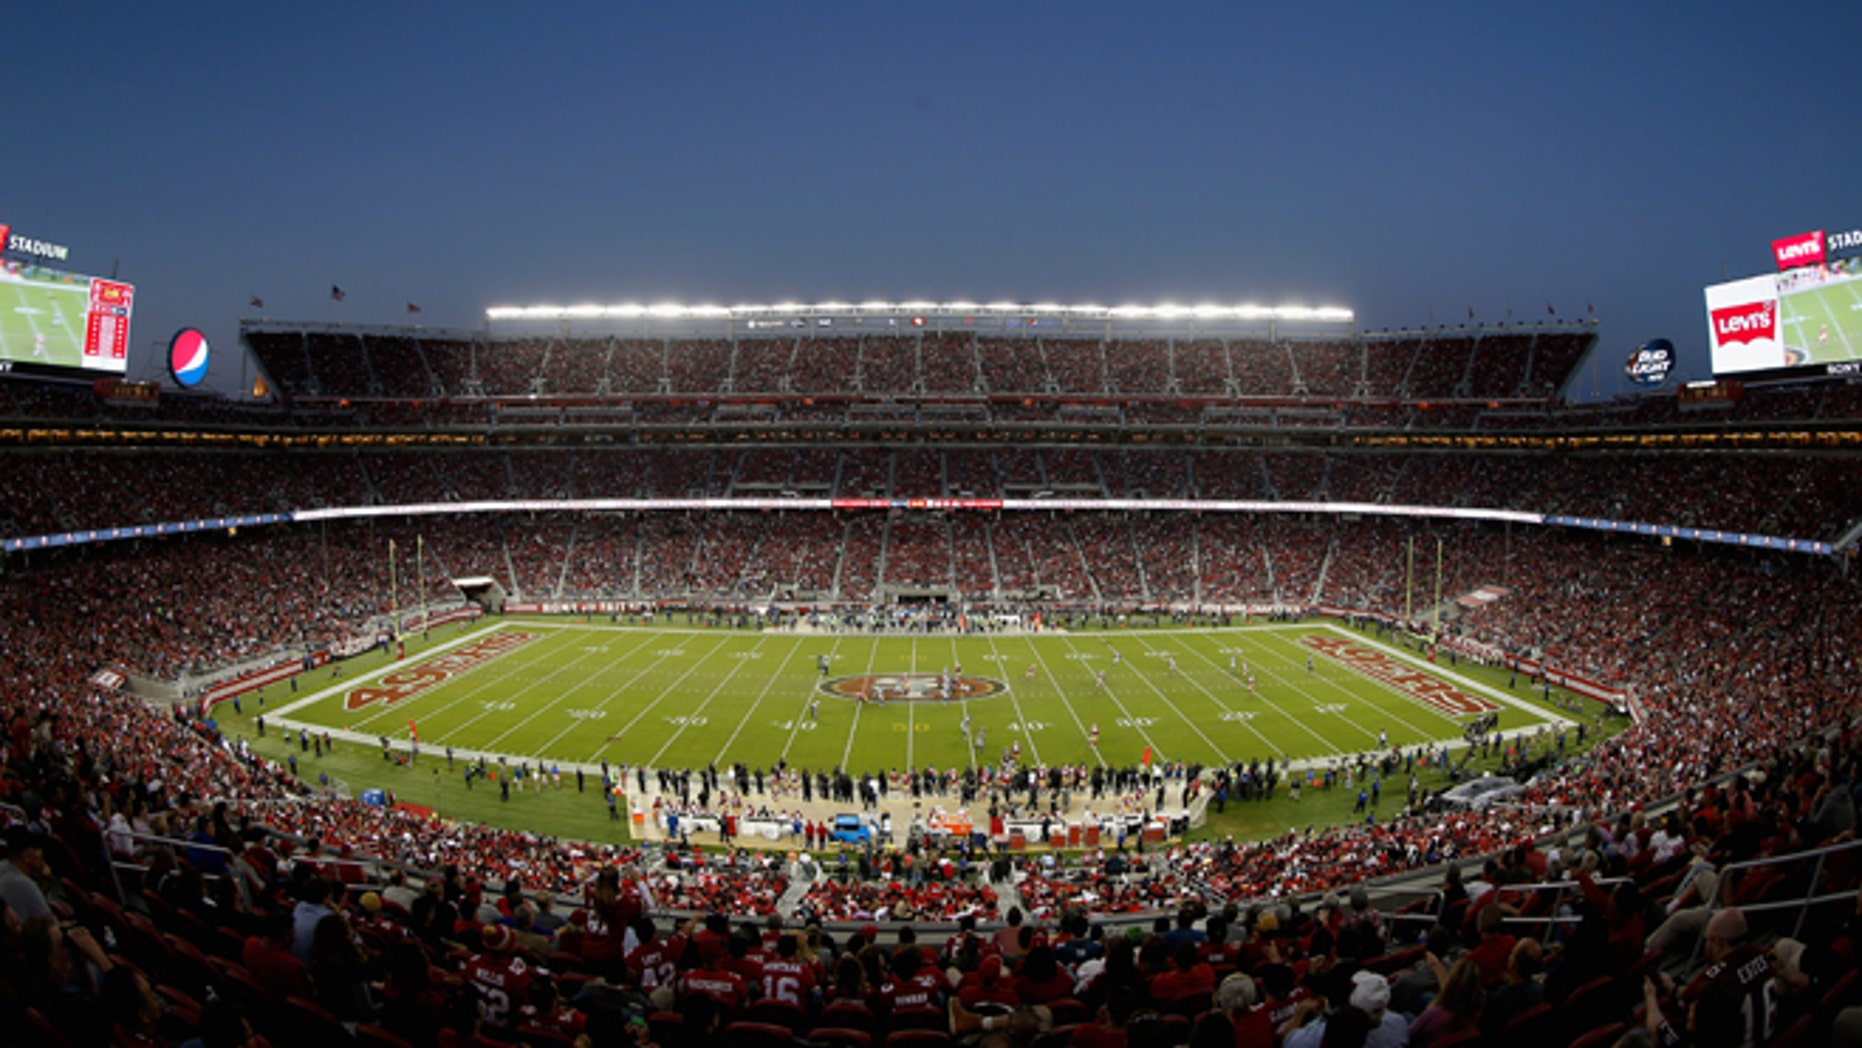 SANTA CLARA, CA - OCTOBER 22:  A general view during the San Francisco 49ers game against the Seattle Seahawks at Levi's Stadium on October 22, 2015 in Santa Clara, California.  (Photo by Ezra Shaw/Getty Images)